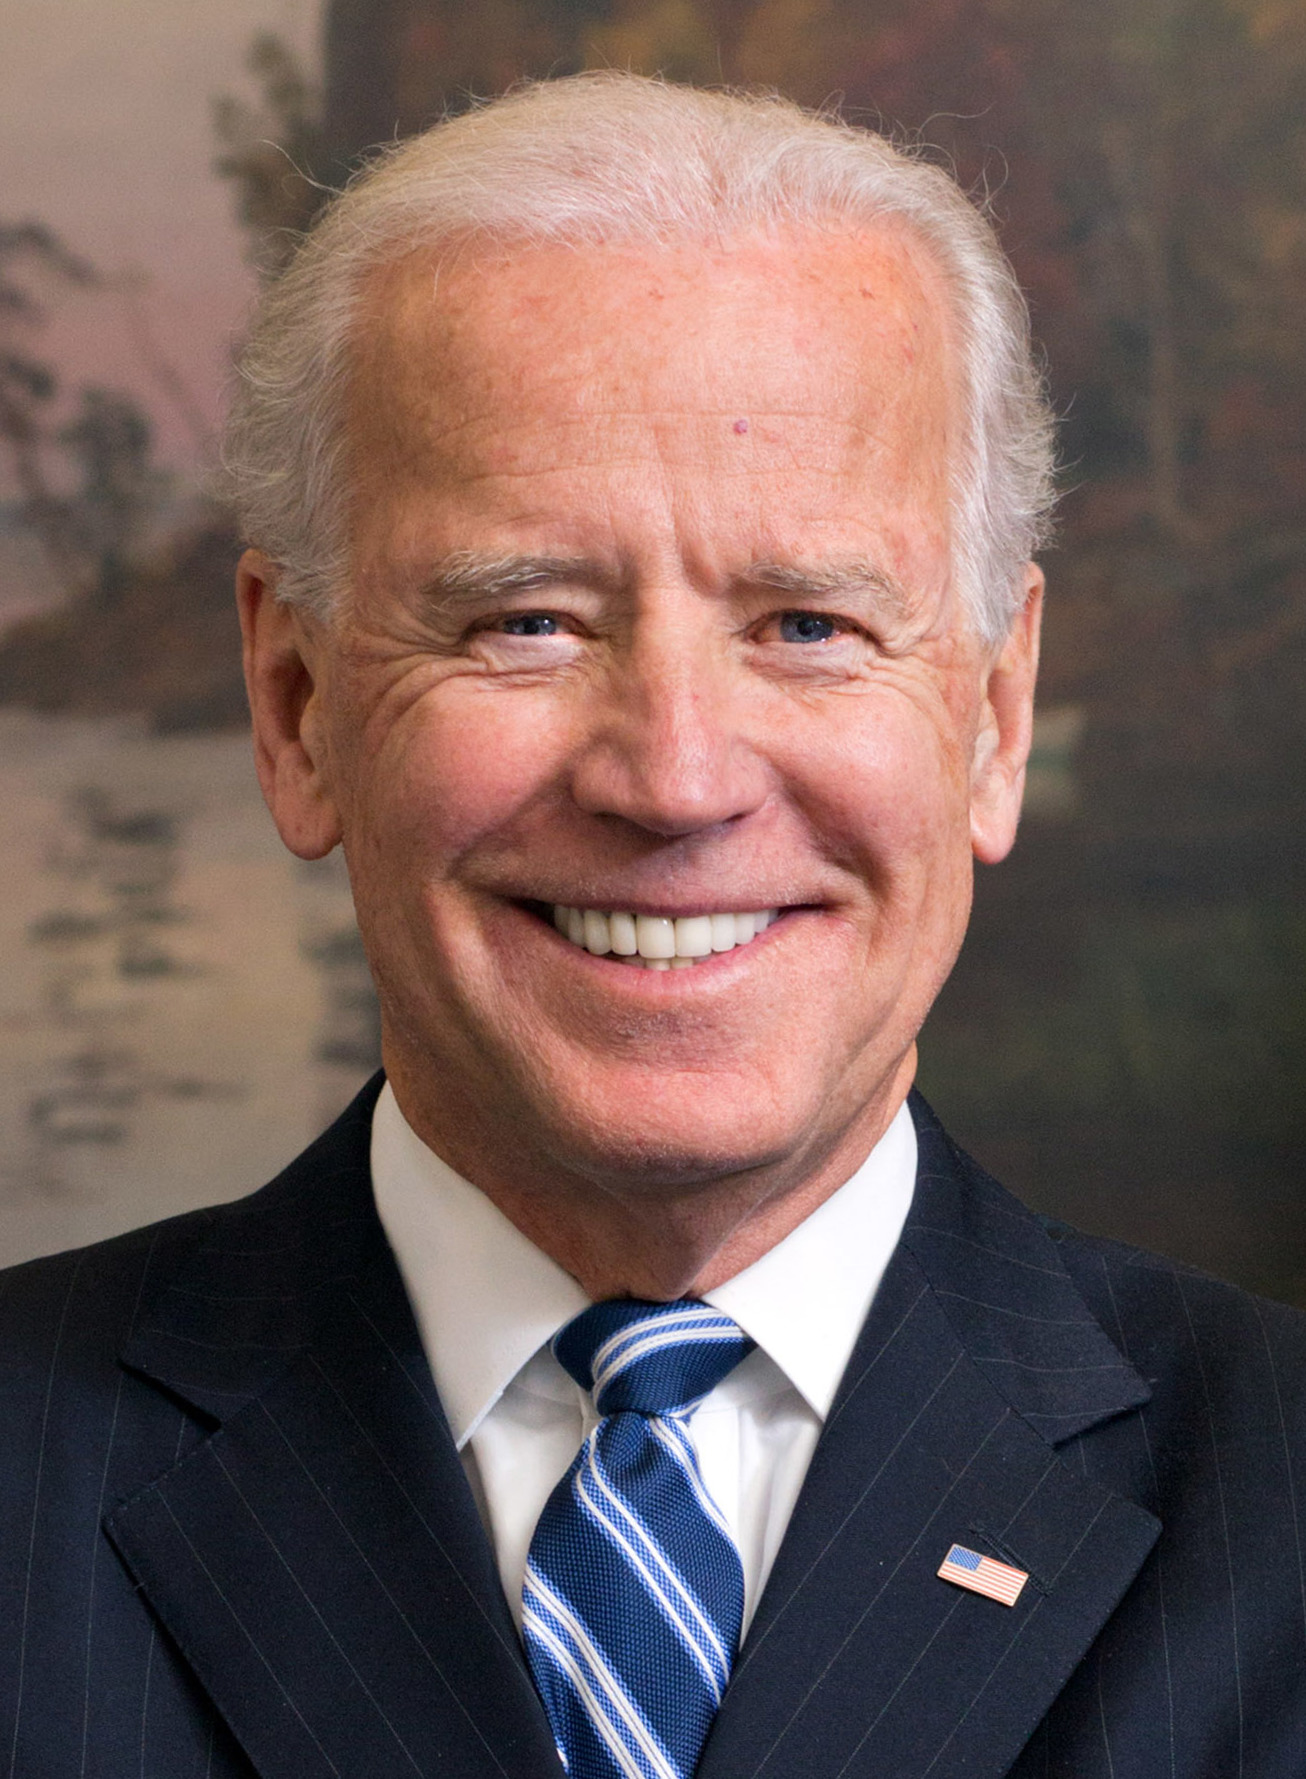 """Biden paid homage to his deep faith: Citing Biblical verses and a popular hymn, Biden said, """"And he will raise you up on eagle's wings, bear you on the breath of dawn,"""